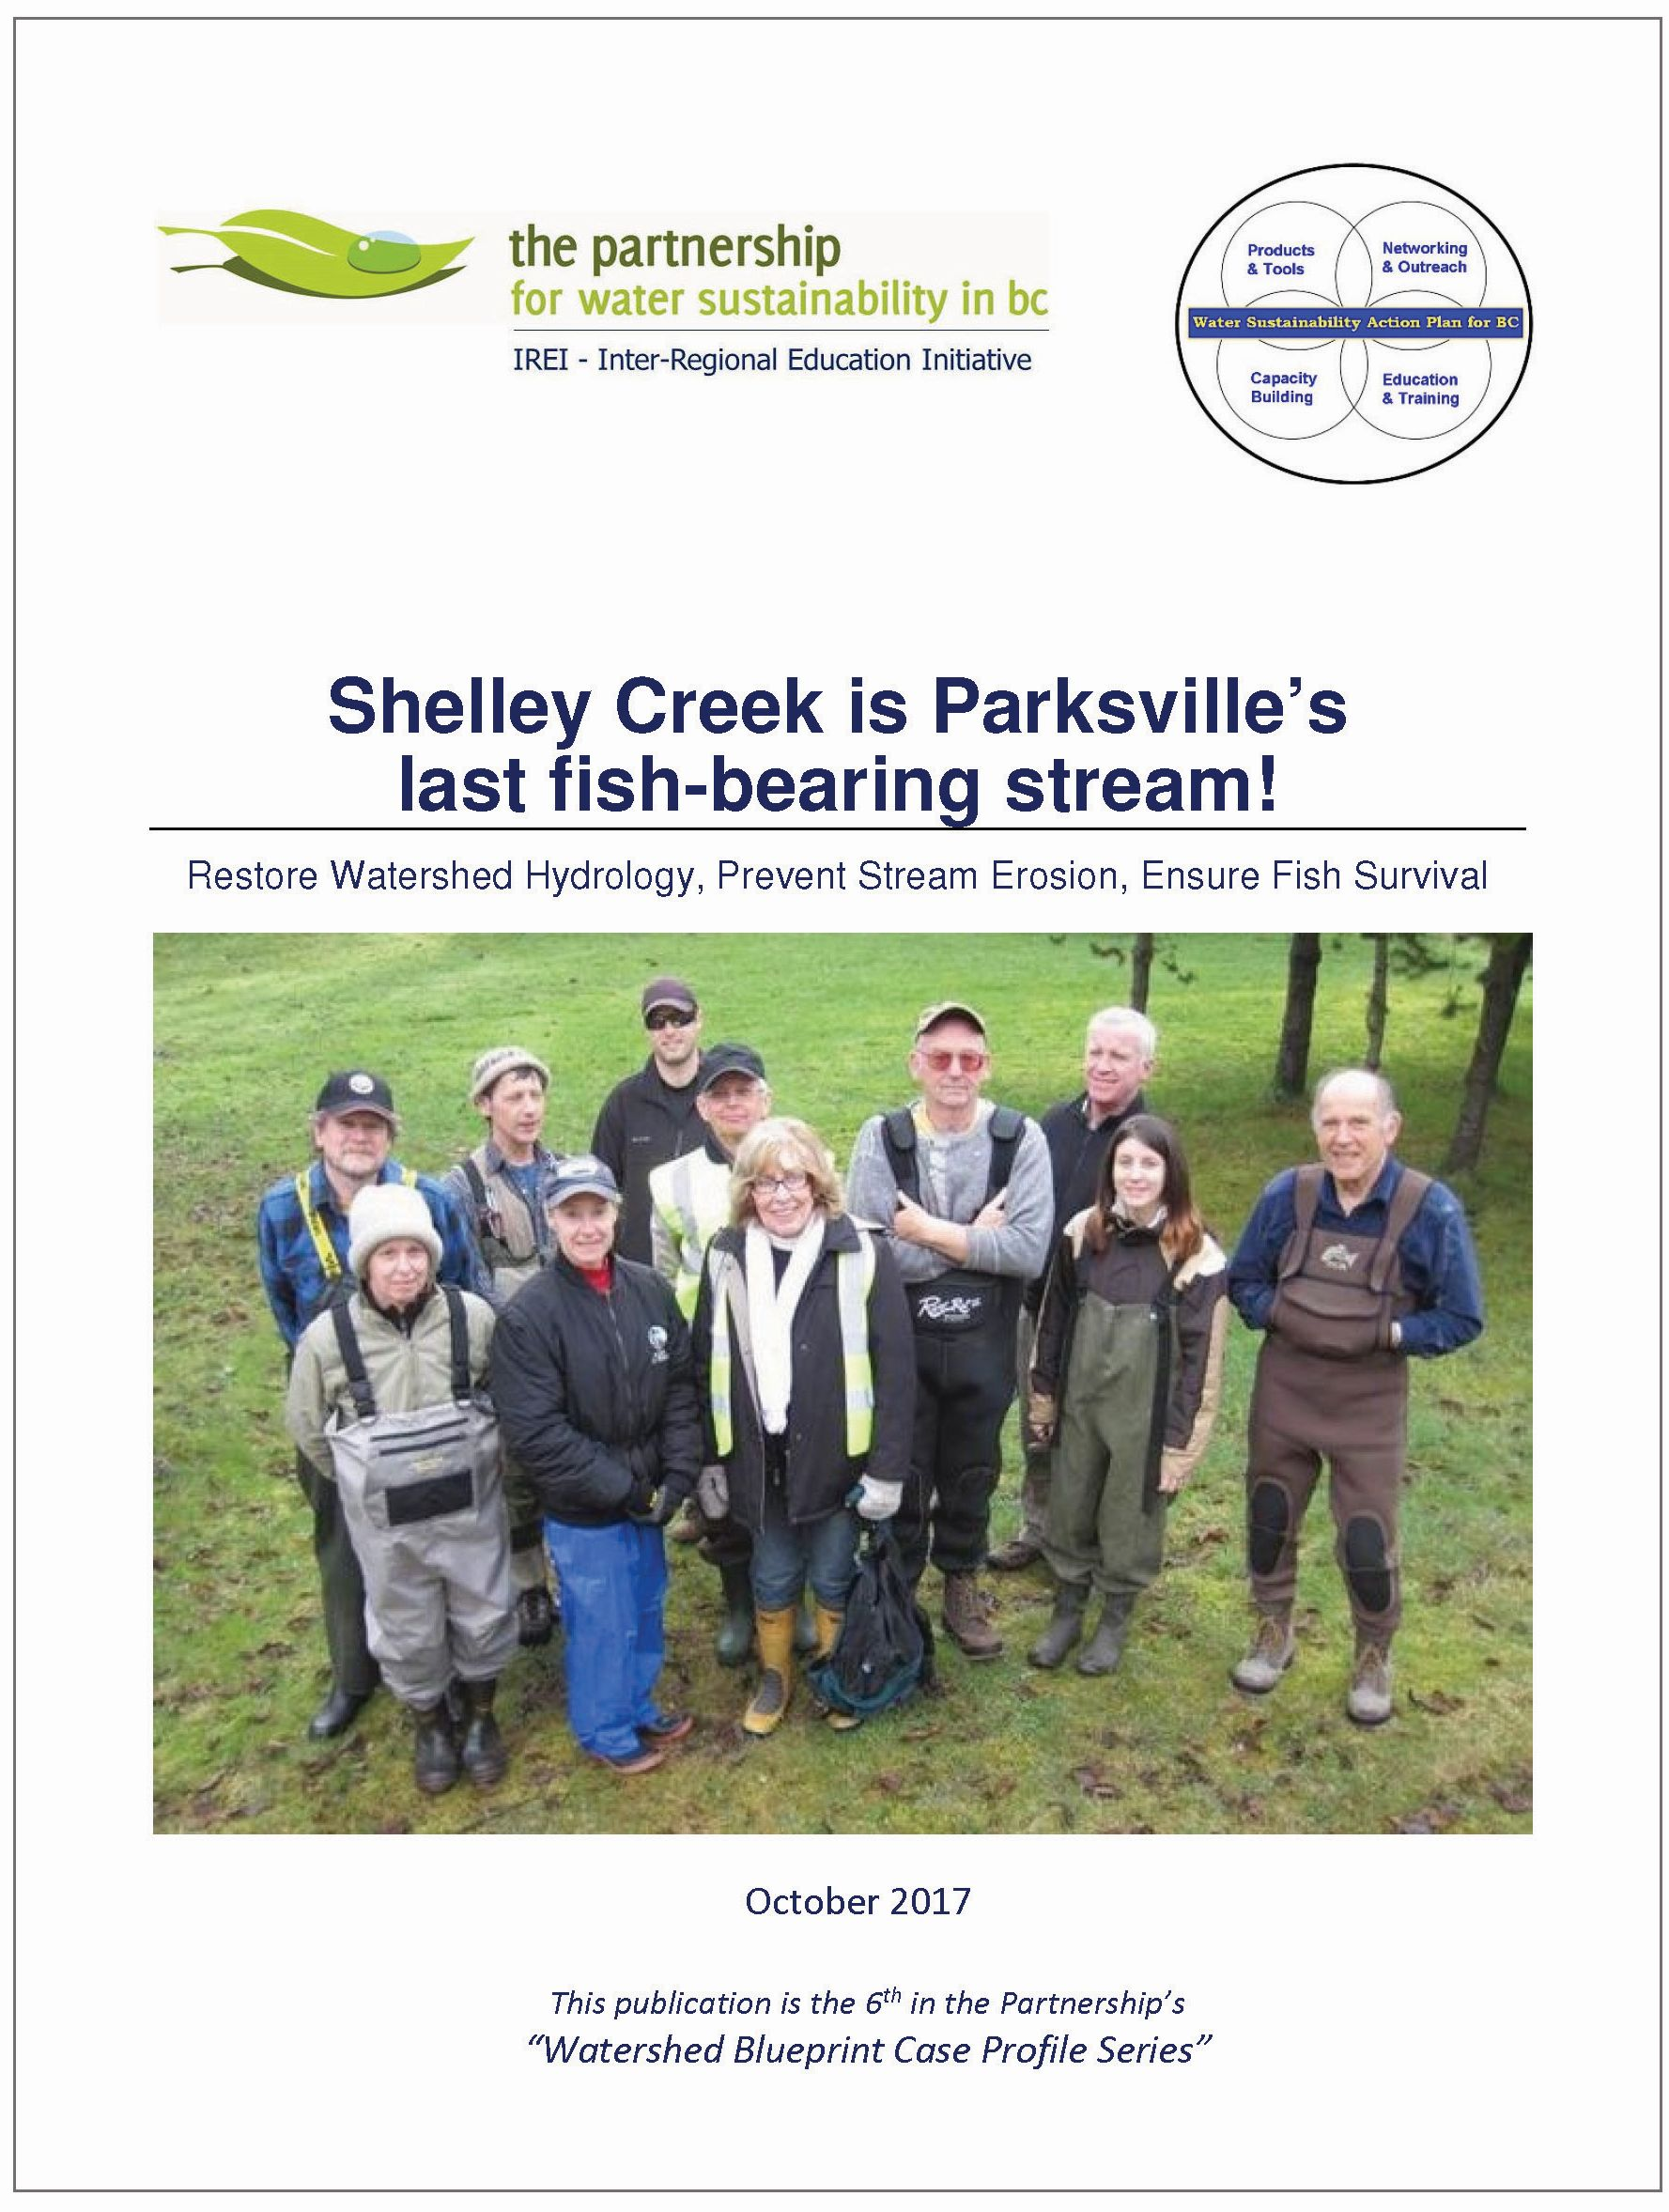 DOWNLOAD: http://waterbucket.ca/rm/files/2017/10/Shelly-Creek-Water-Balance-Demonstration_Oct2017.pdf